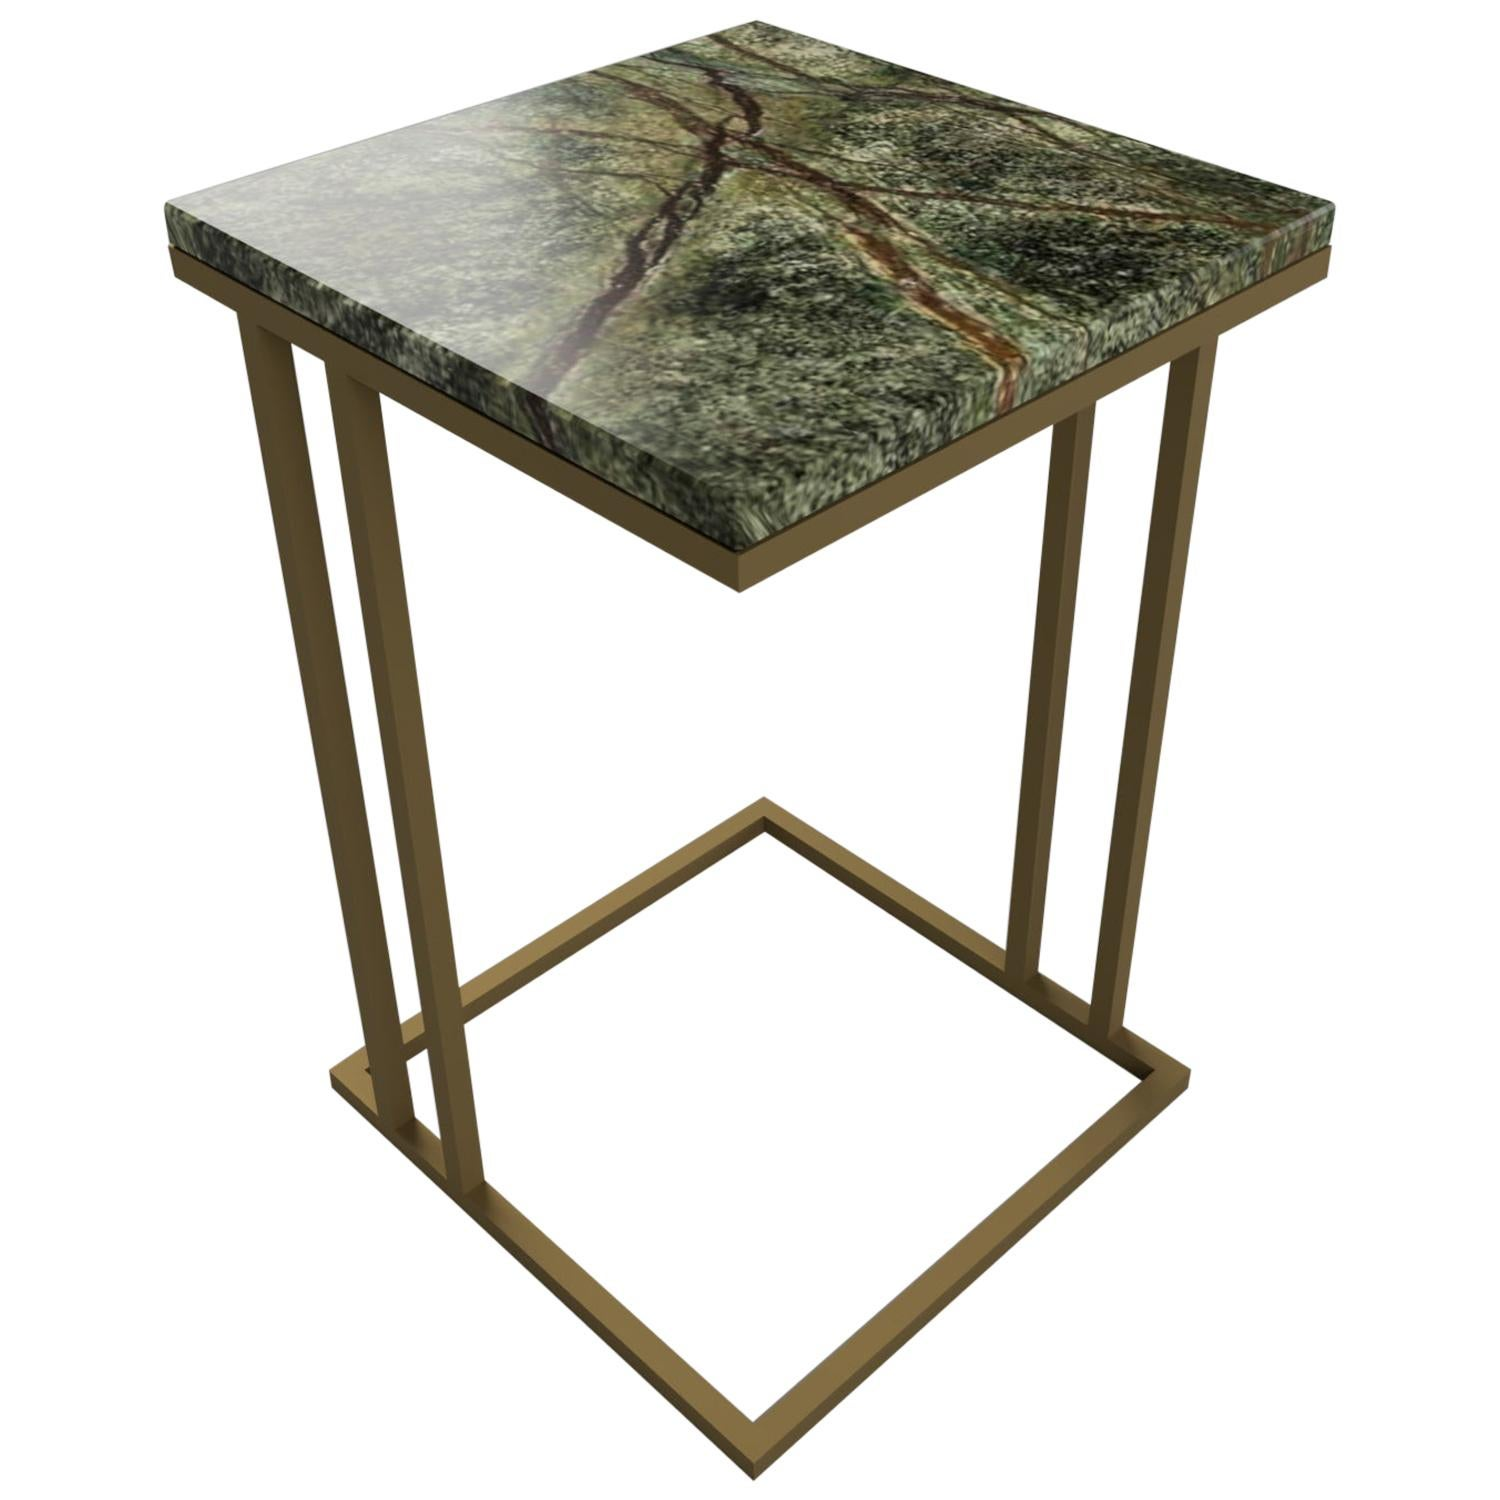 Art Deco Inspired Elio II Slim Side Table Squared Brass Tint and Marble Surface